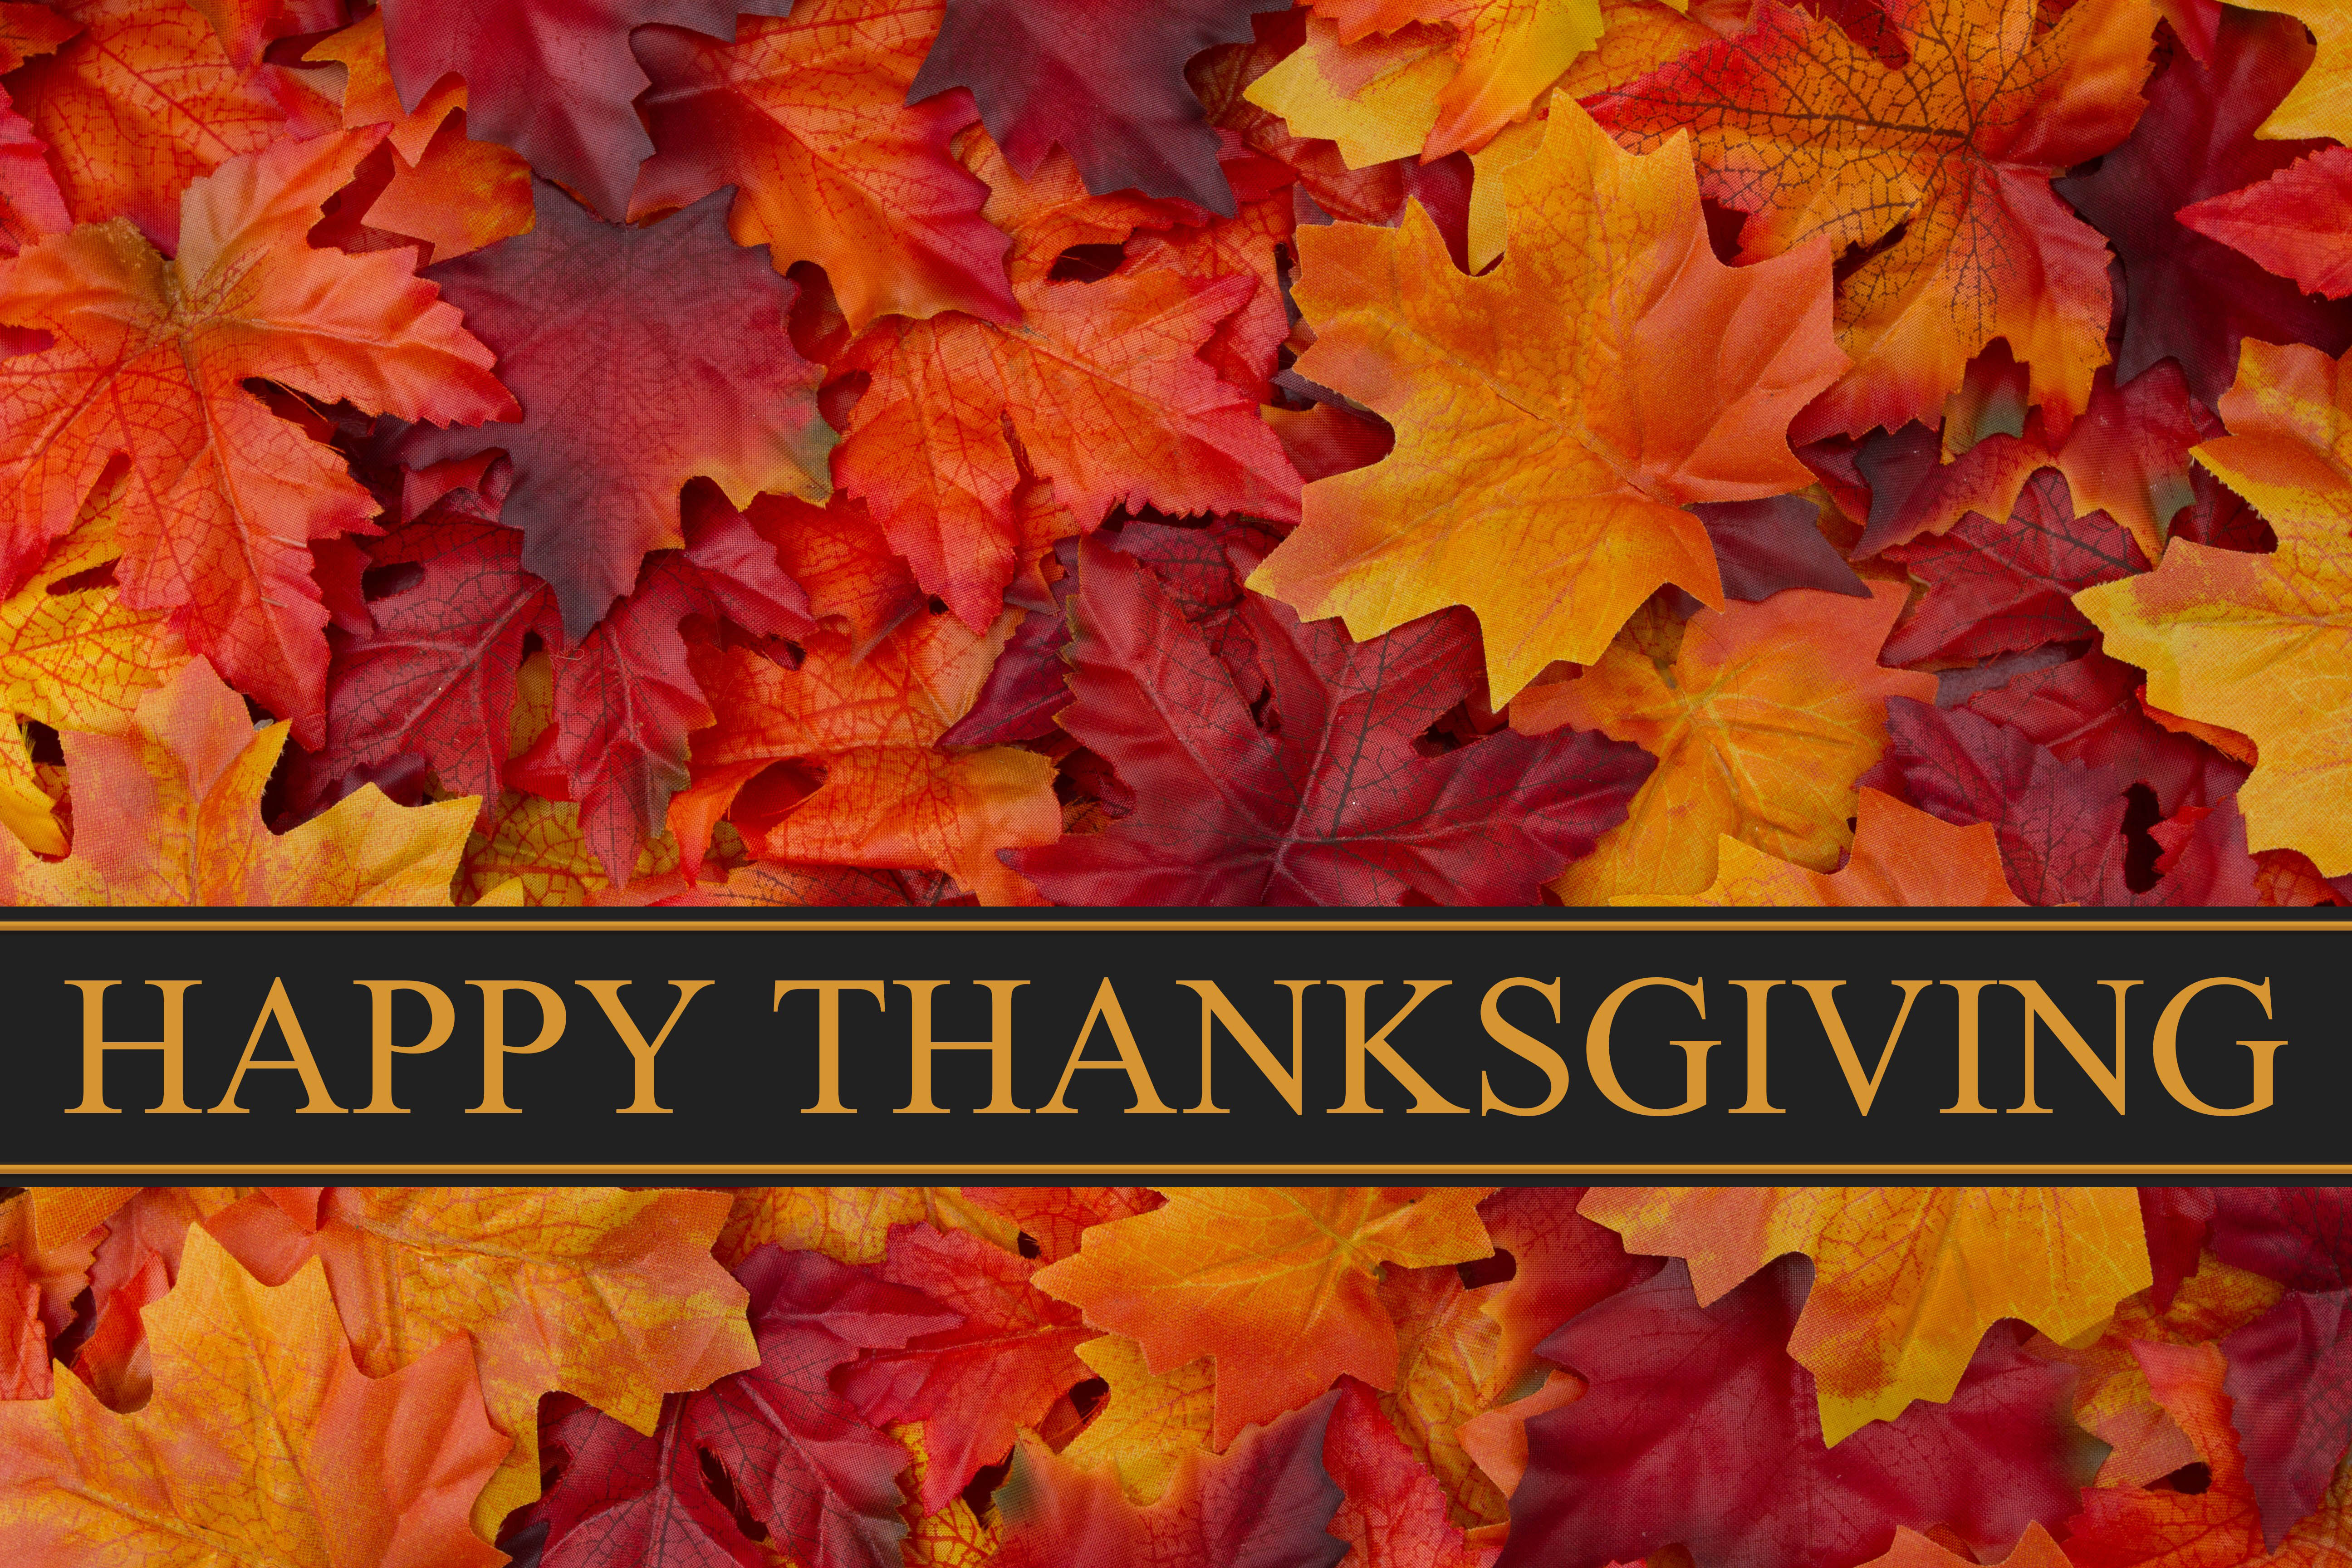 happy thanksgiving day leaves hd pc background wallpaper